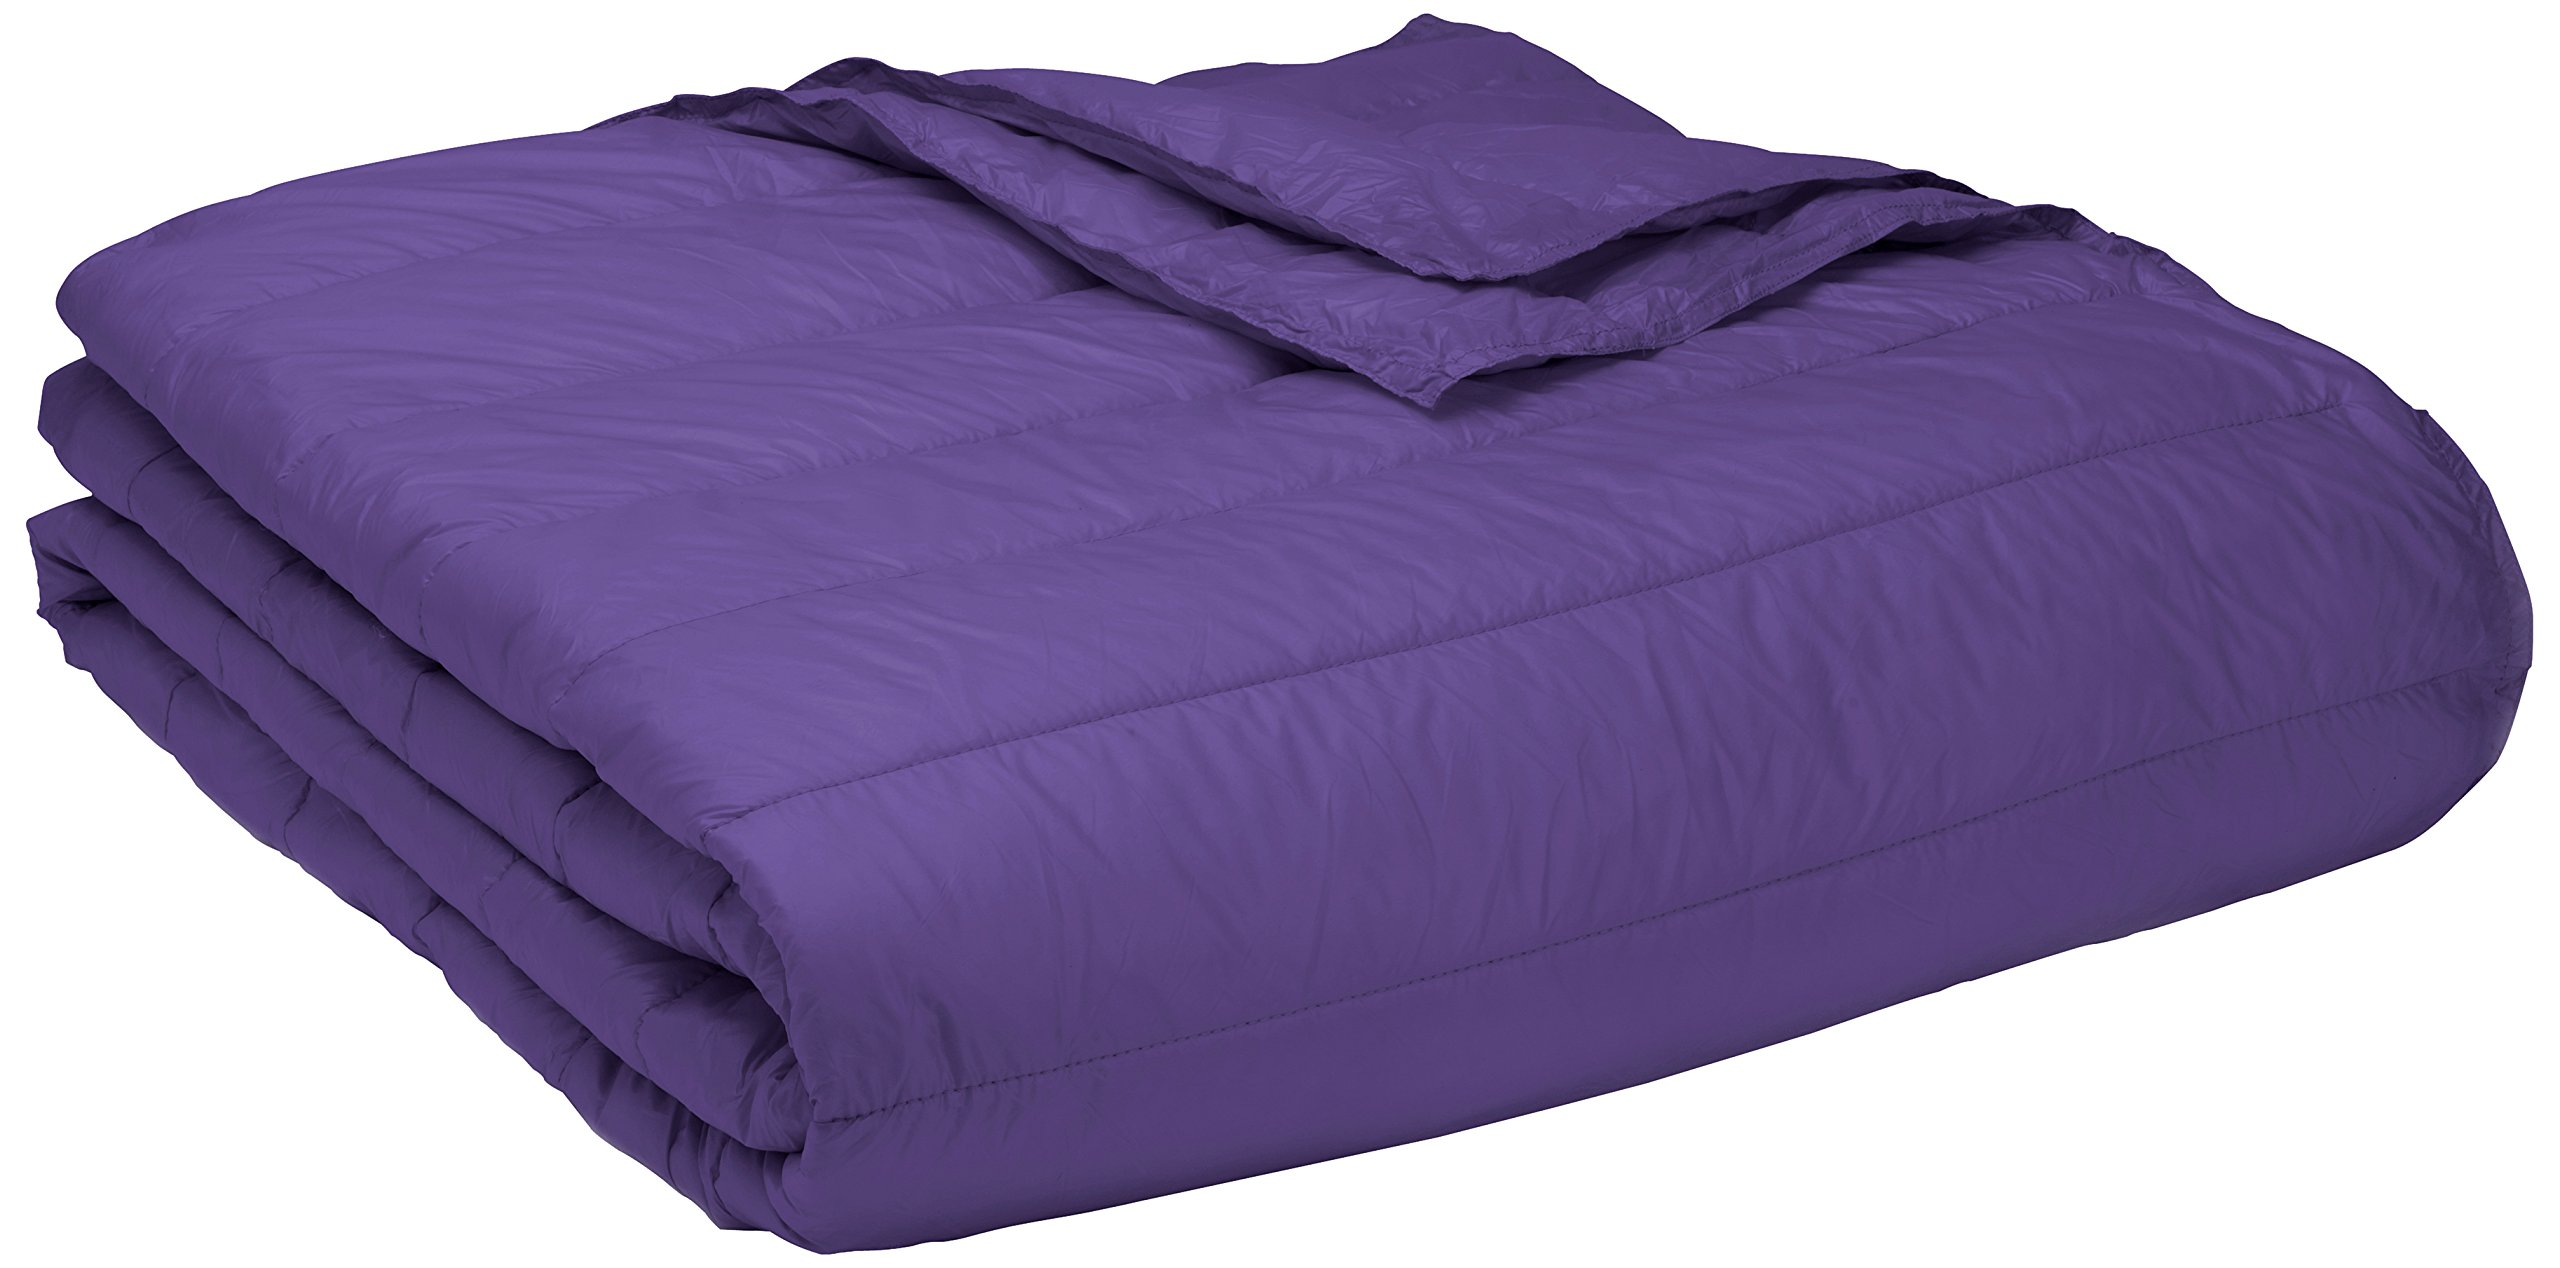 PUFF Down Alternative Indoor/Outdoor Water Resistant Blanket with Extra Strong Nylon Cover, King, Purple